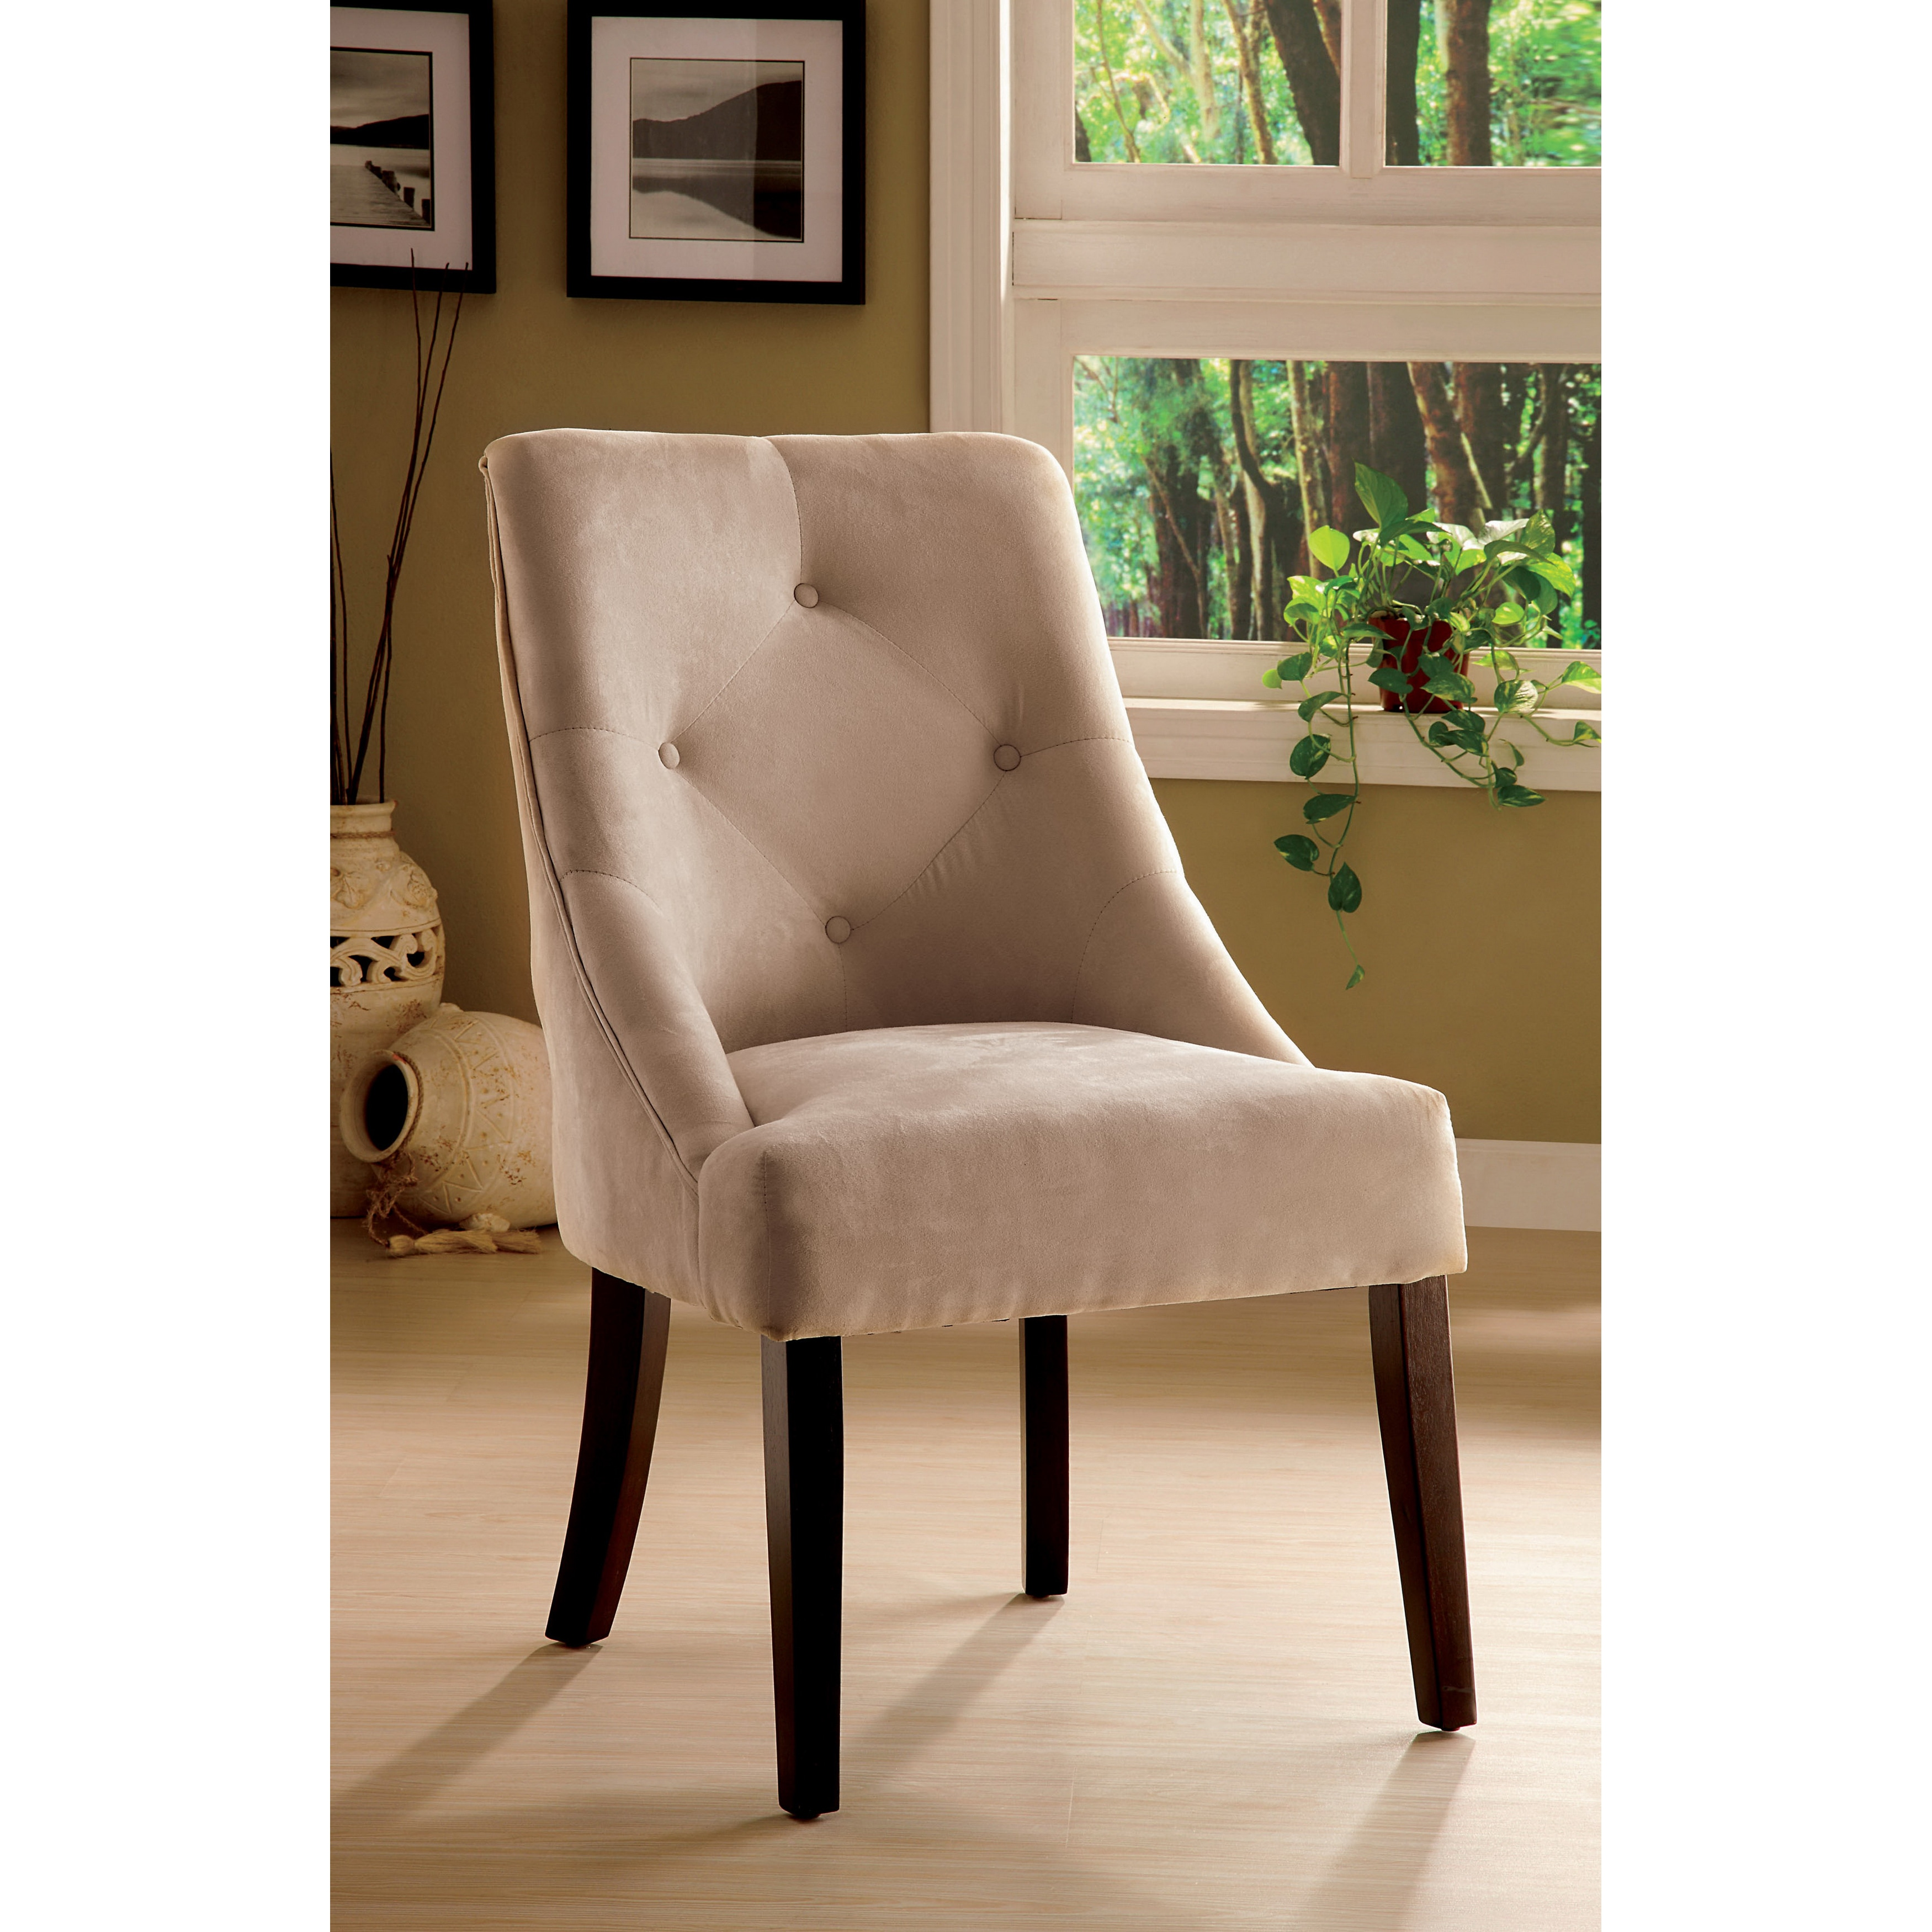 Overstock Dining Chairs: Furniture Of America Mocha Aura Leisure Microfiber Dining